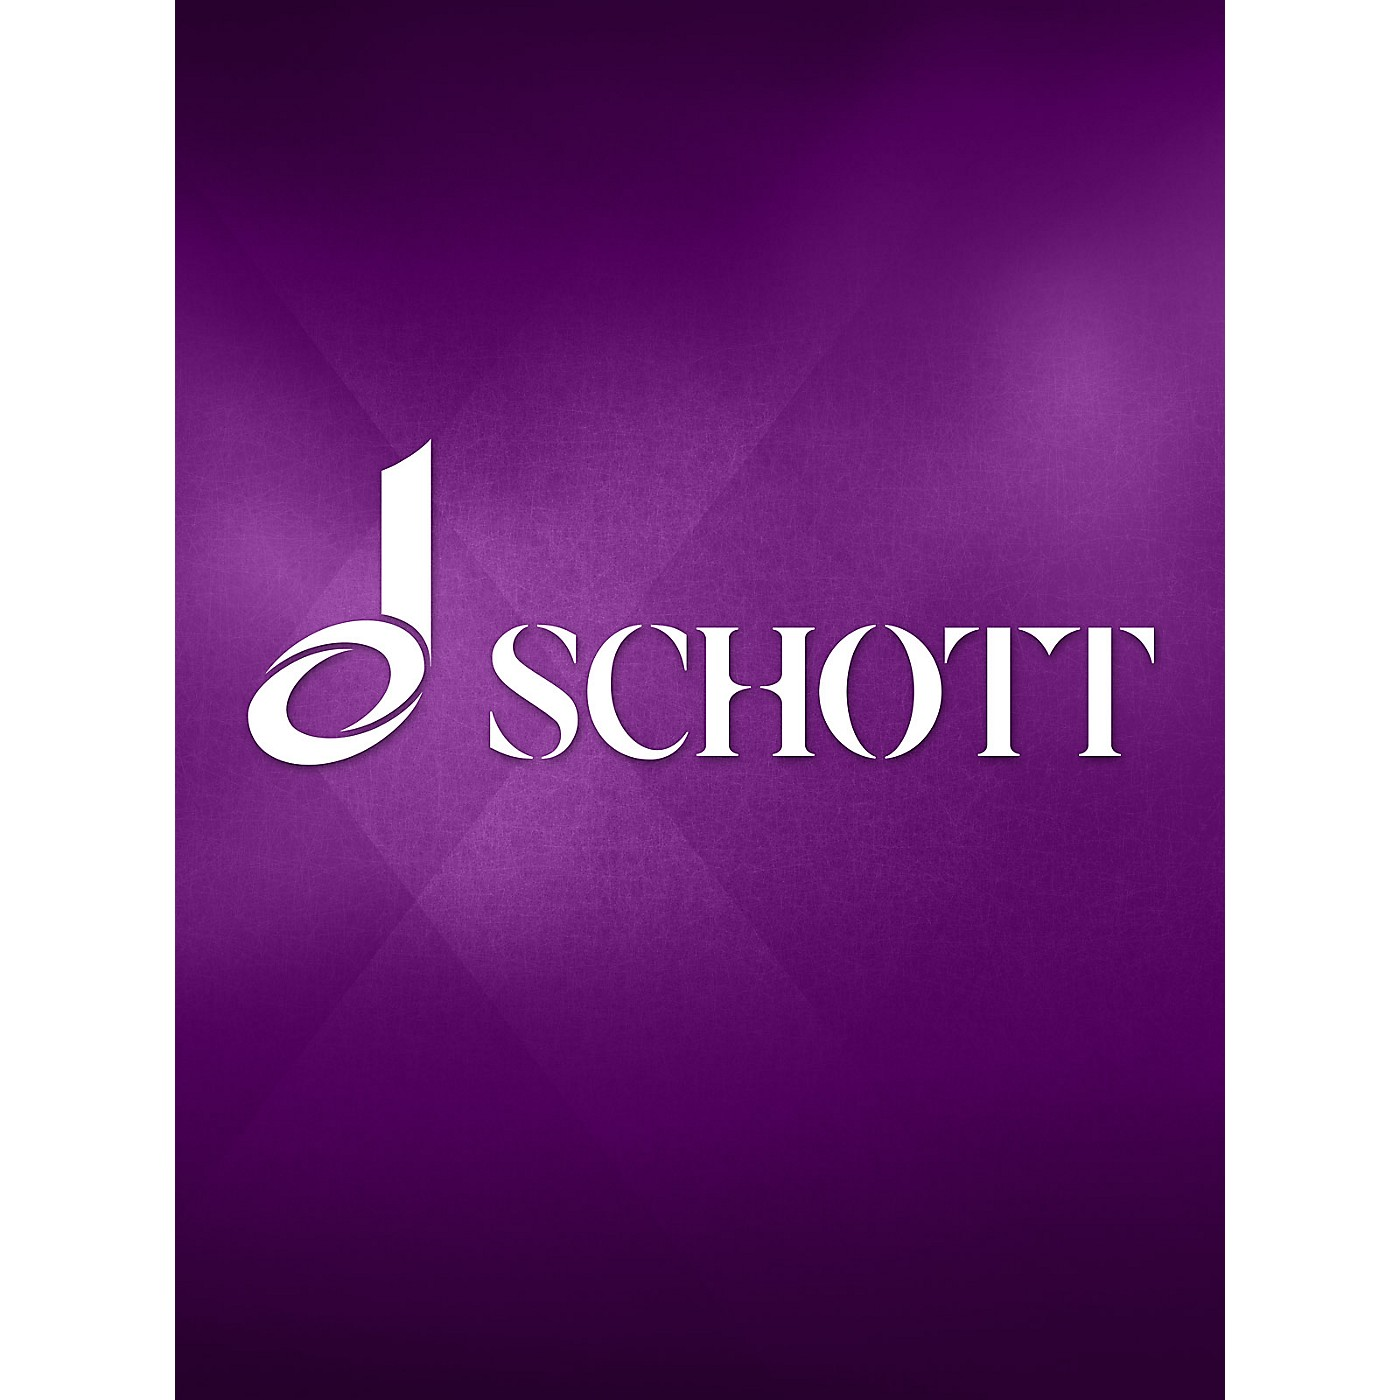 Schott Japan Technique for Contemporary Flute Music (for Players and Composers) Schott Series thumbnail